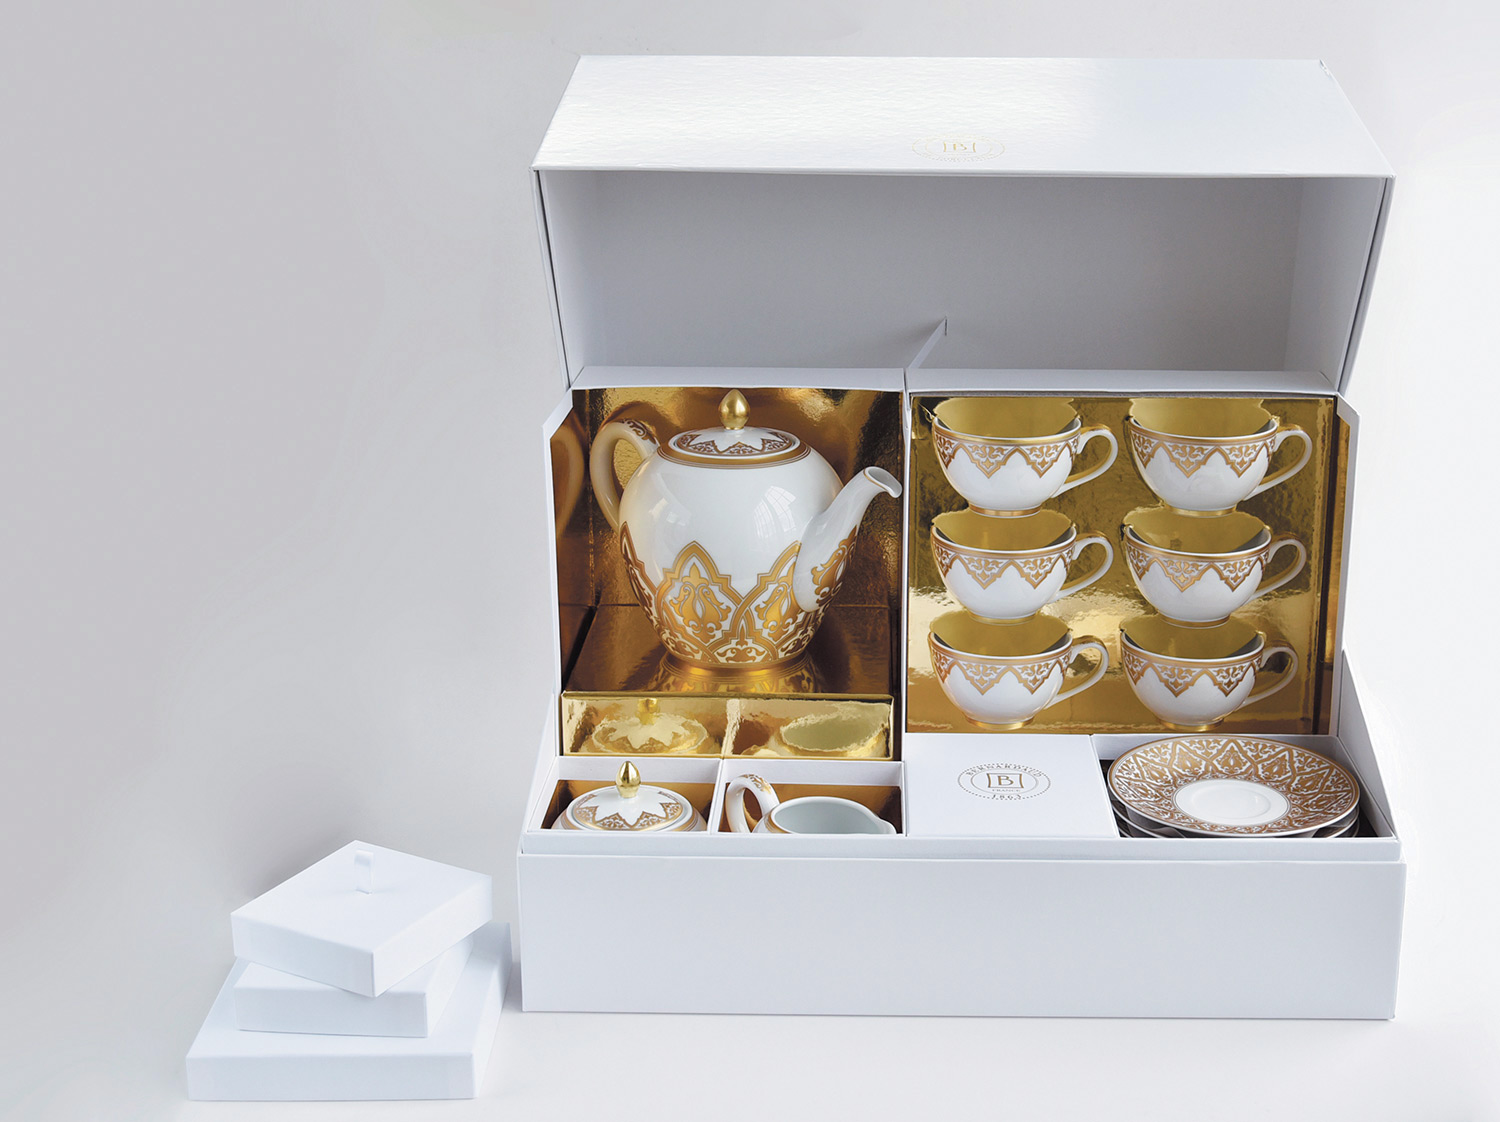 China Tea gift case (teapot, creamer, sugar bowl, 6 tea cups and saucers) of the collection Venise | Bernardaud